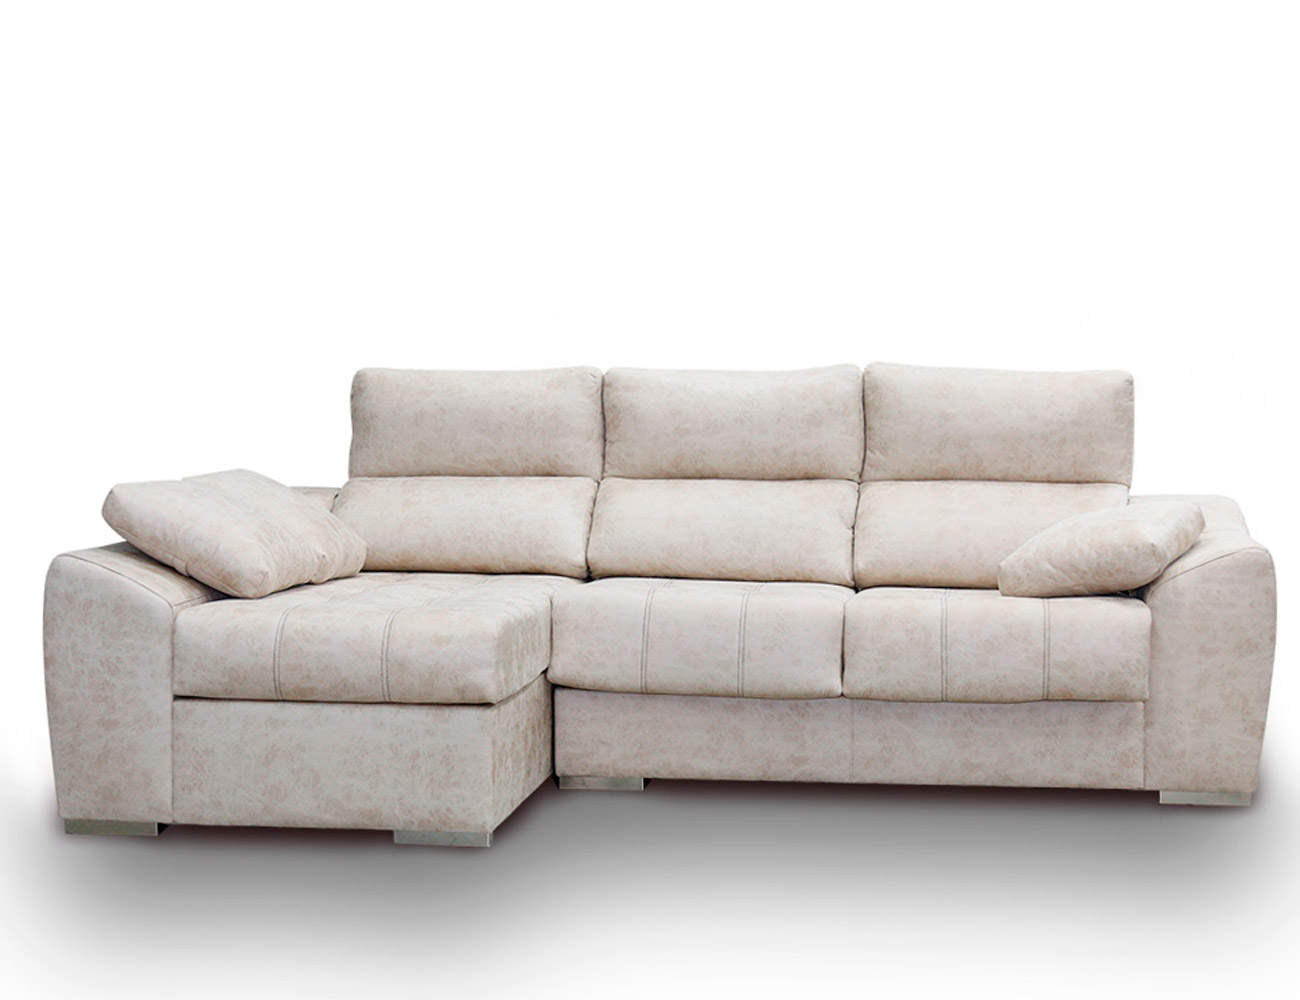 Sofa chaiselongue anti manchas beig blanco1